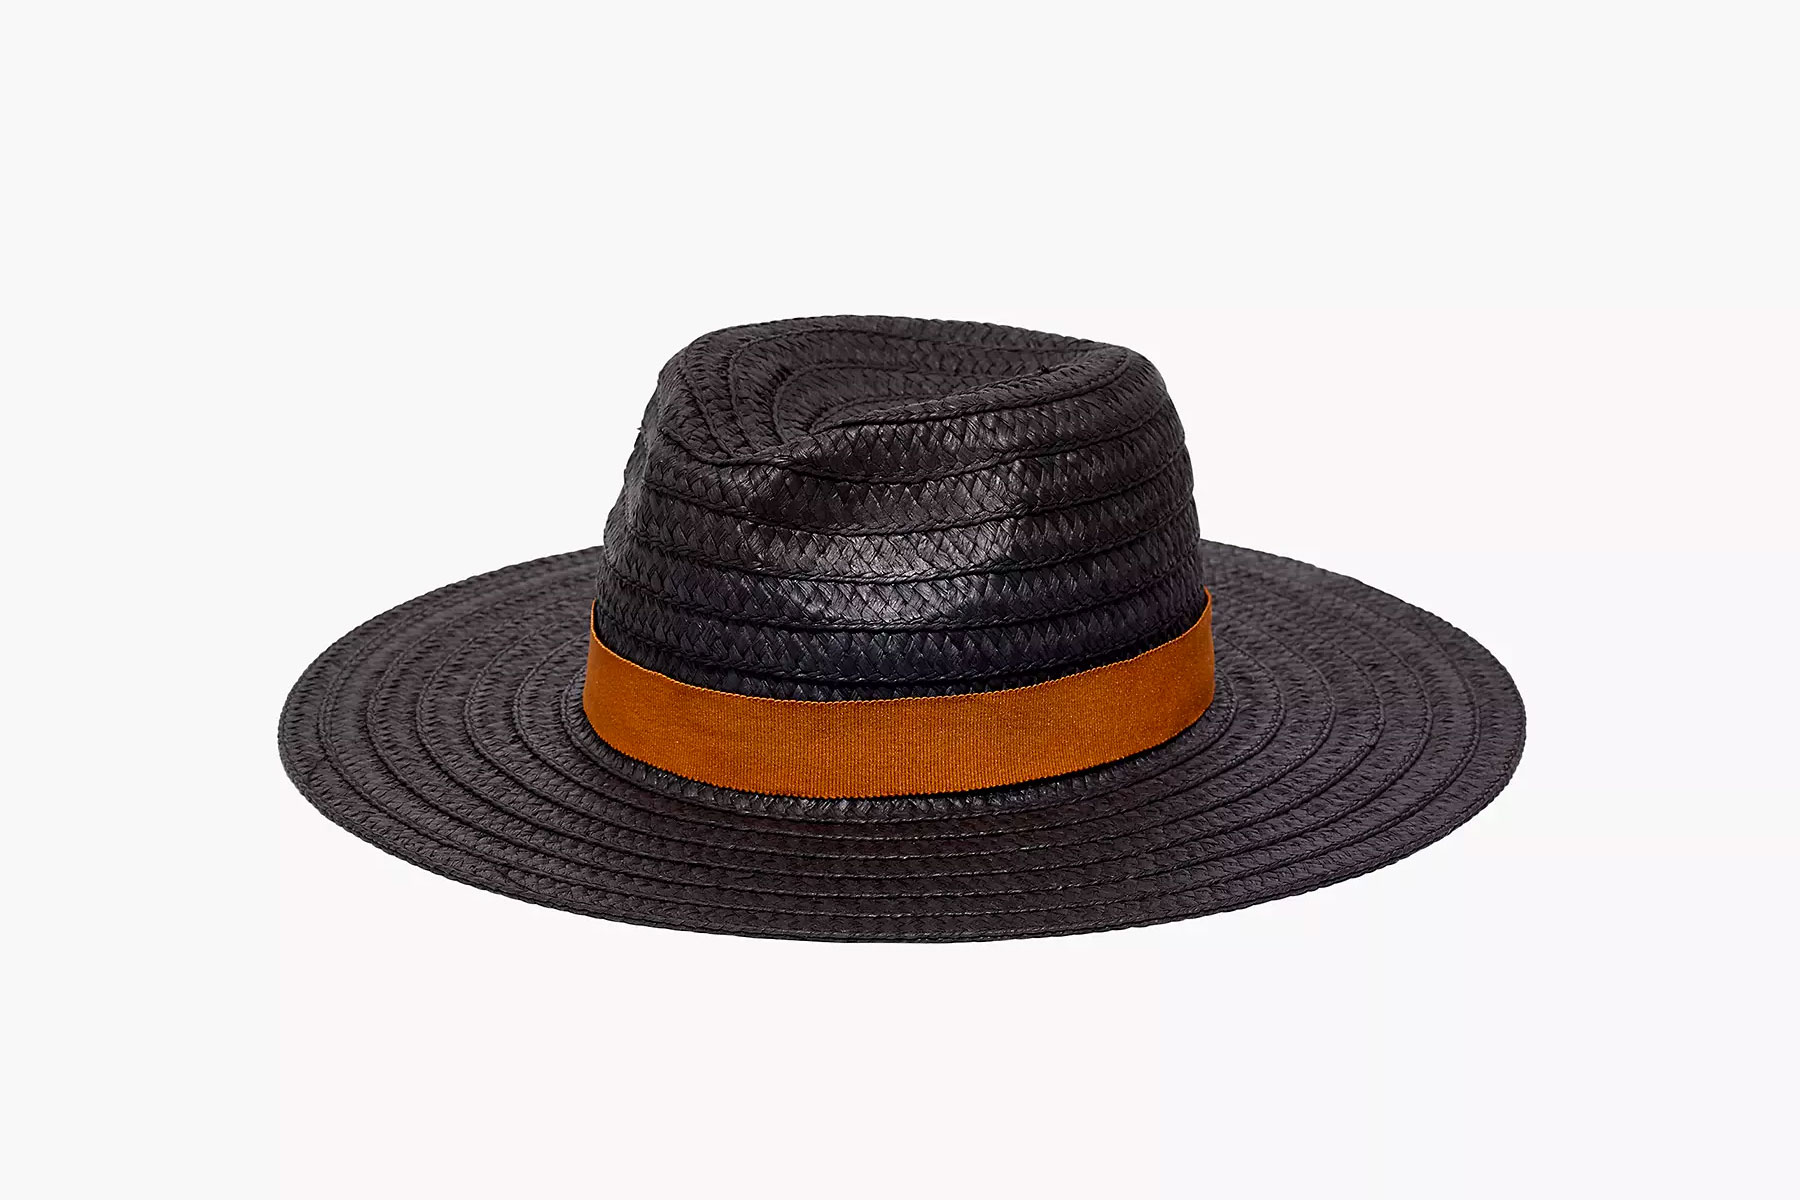 Black straw hat with tan band